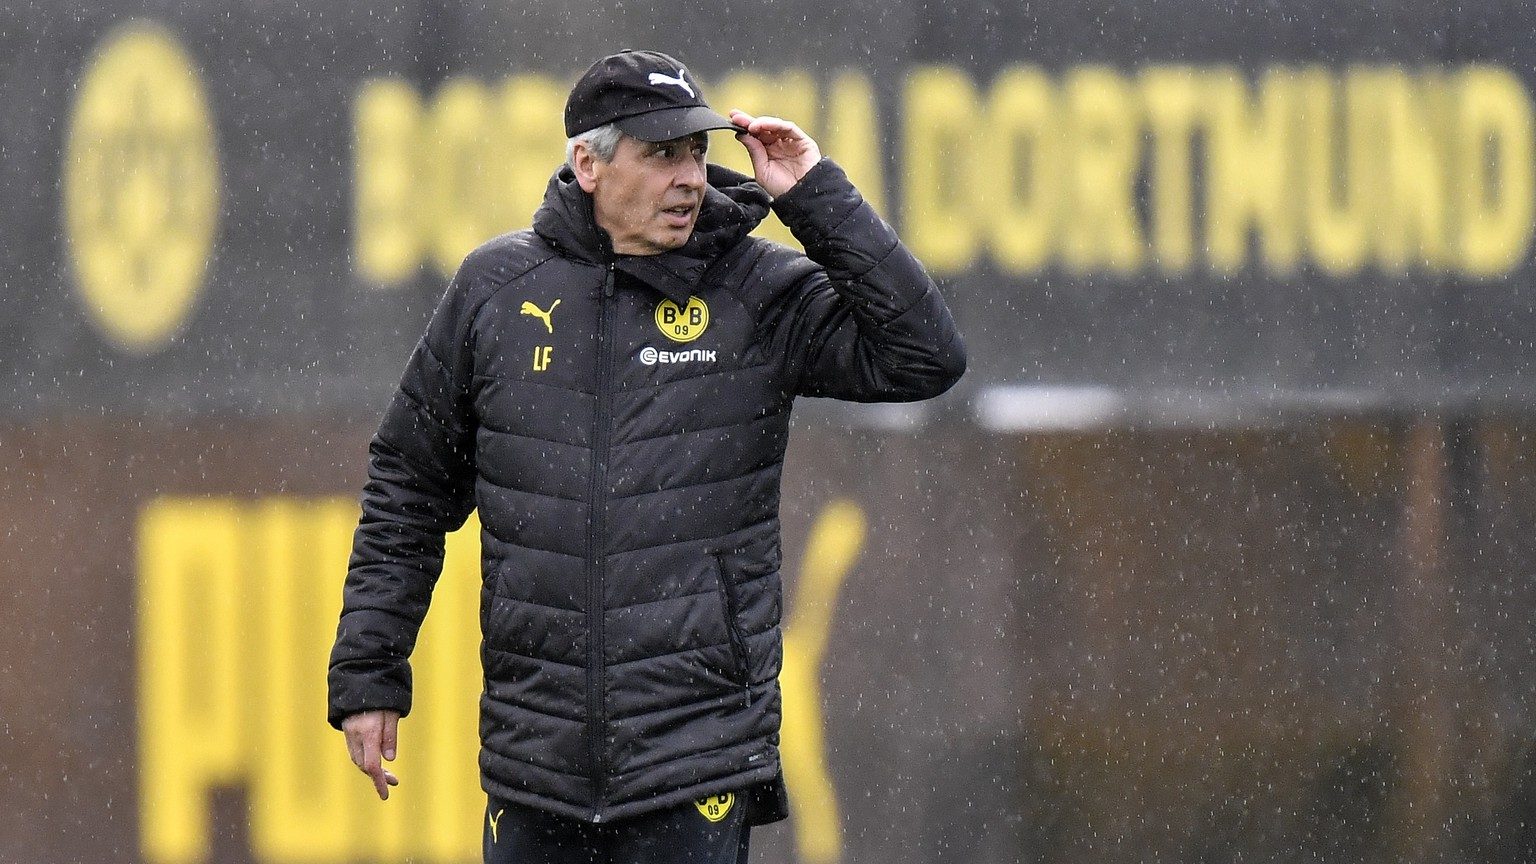 Dortmund's head coach Lucien Favre arrives in the rain during a training session in Dortmund, Germany, Monday, Nov. 4, 2019. Borussia Dortmund plays Inter Milan in a Champions League Group F soccer match in Dortmund on Tuesday. (AP Photo/Martin Meissner)